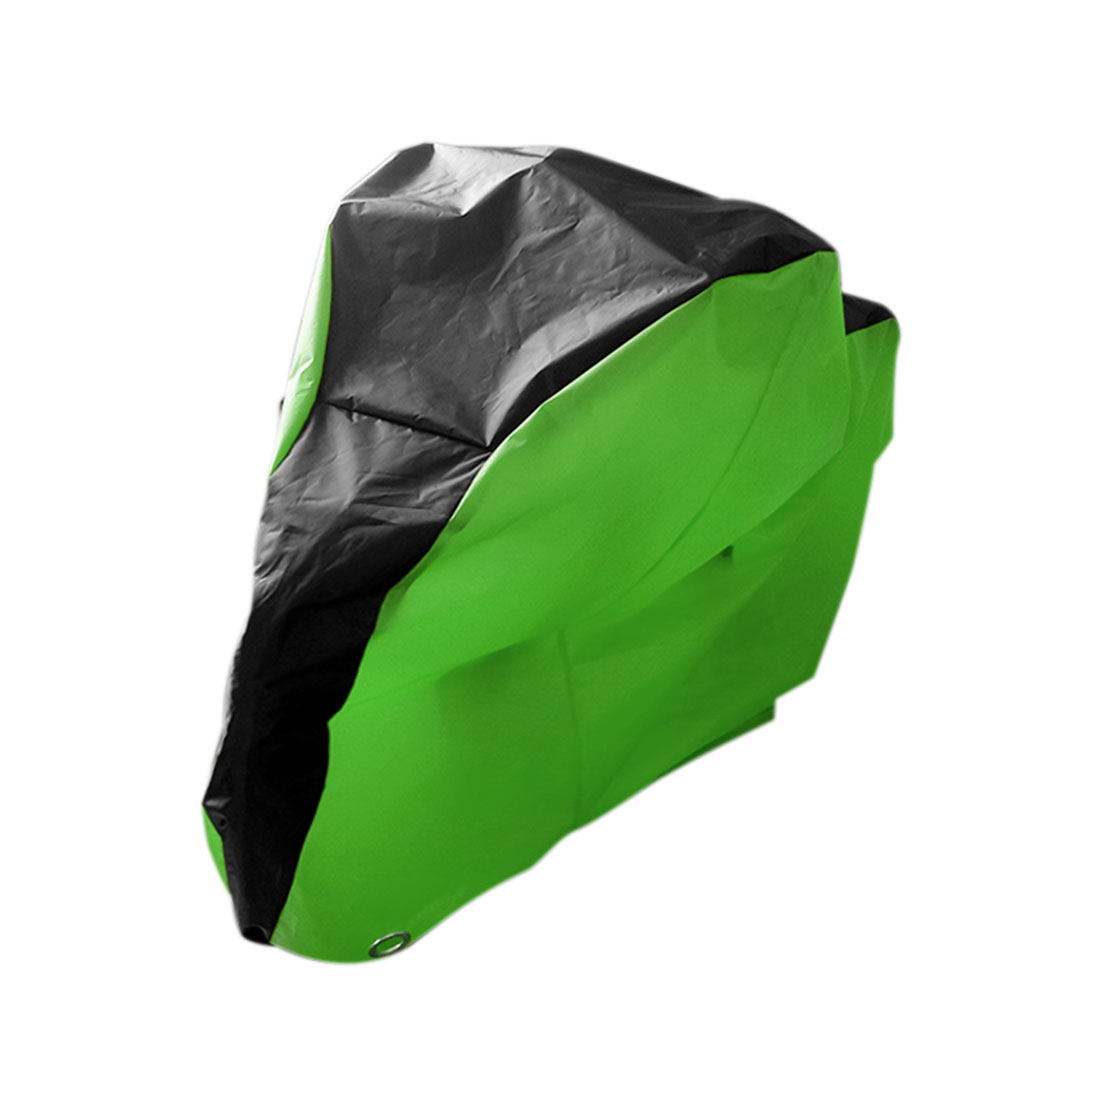 L Green Waterproof Rain UV Dust Resistant Protective Cover for Bike Bicycle